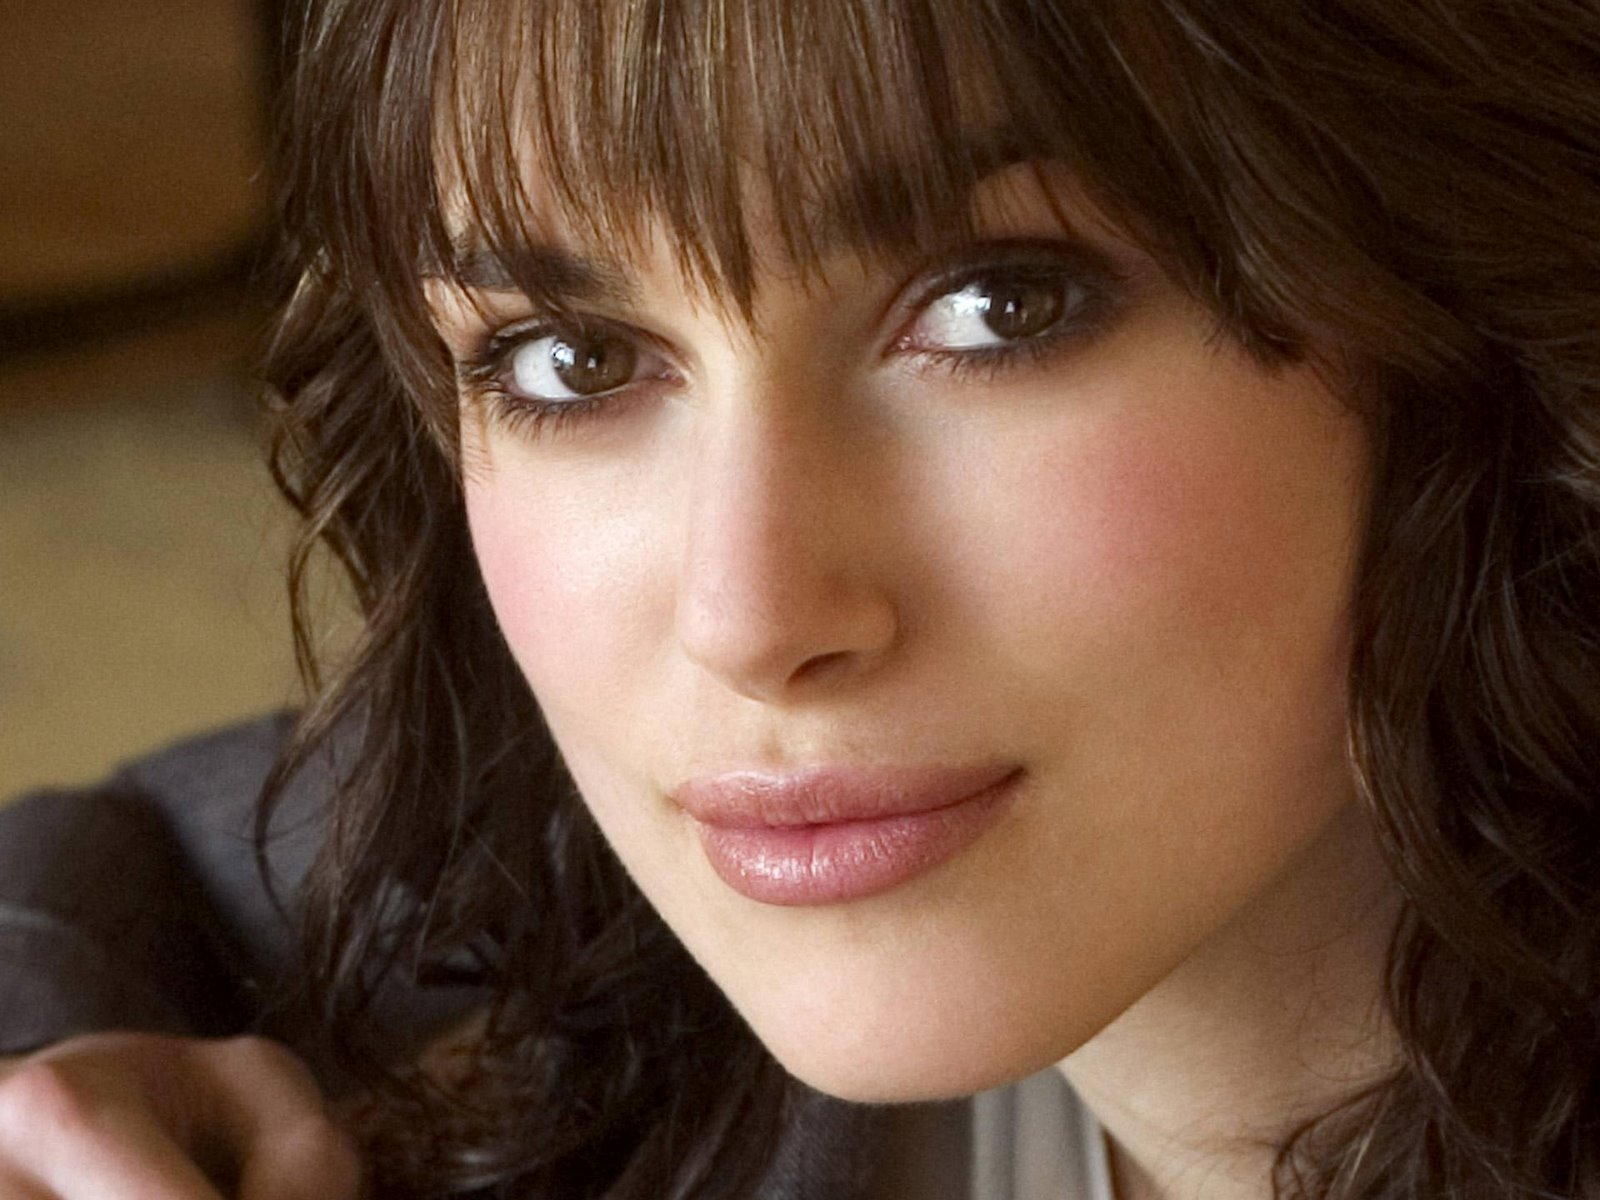 Keira Knightley Romance Hairstyles Pictures, Long Hairstyle 2013, Hairstyle 2013, New Long Hairstyle 2013, Celebrity Long Romance Hairstyles 2022